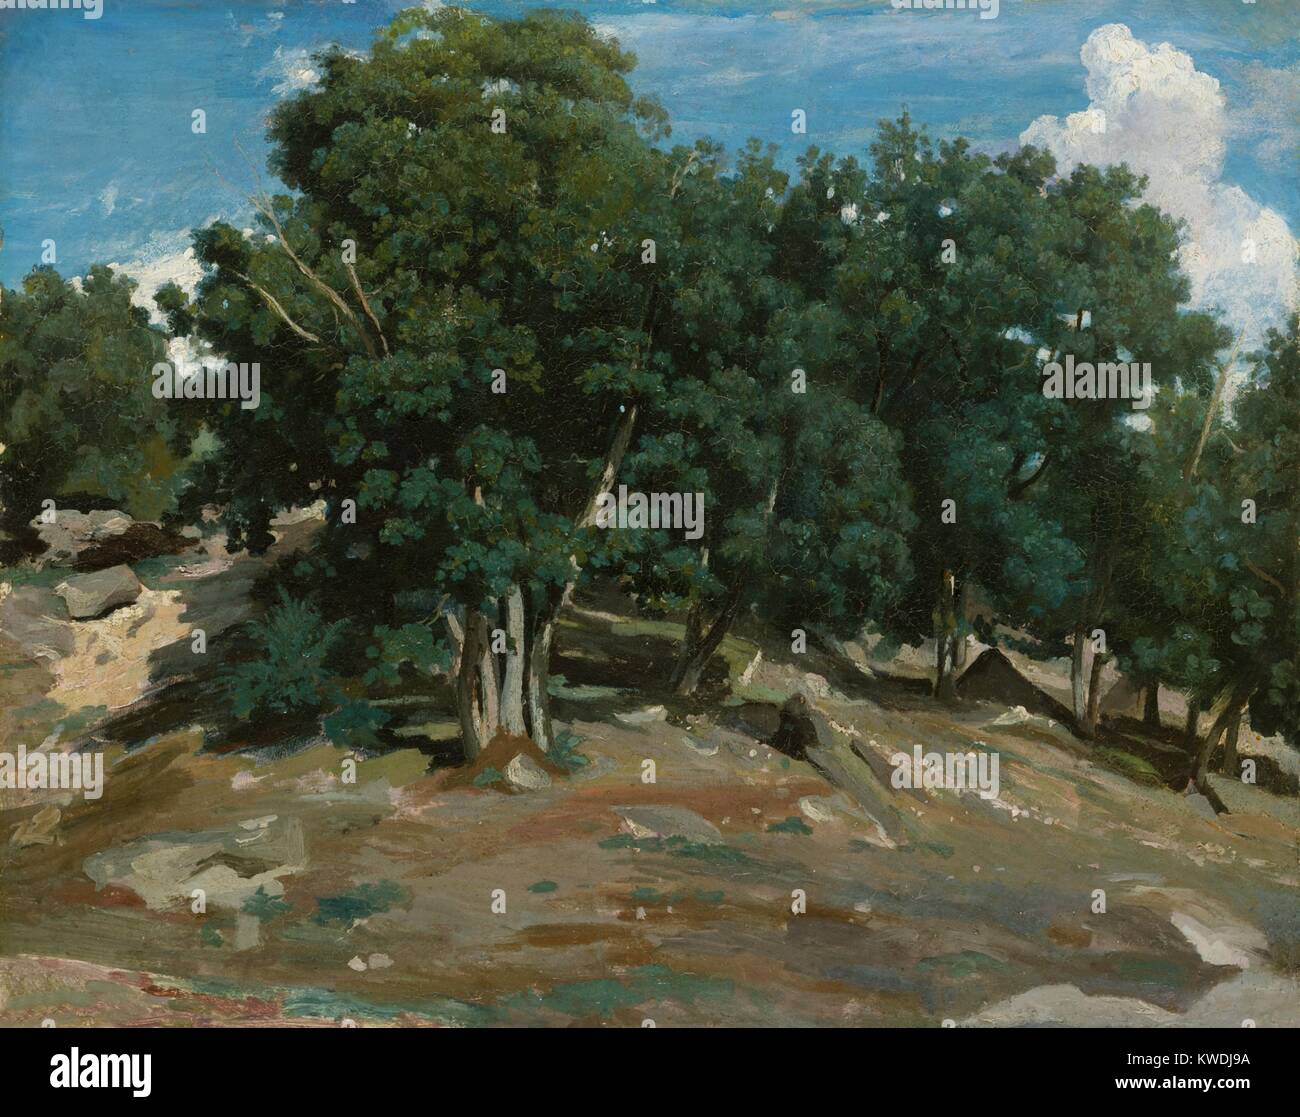 FOUNTAINEBLEAU: OAK TREES AT BAS-BREAU, by Camille Corot, 1832-33, French painting, oil on paper. Corot painted - Stock Image